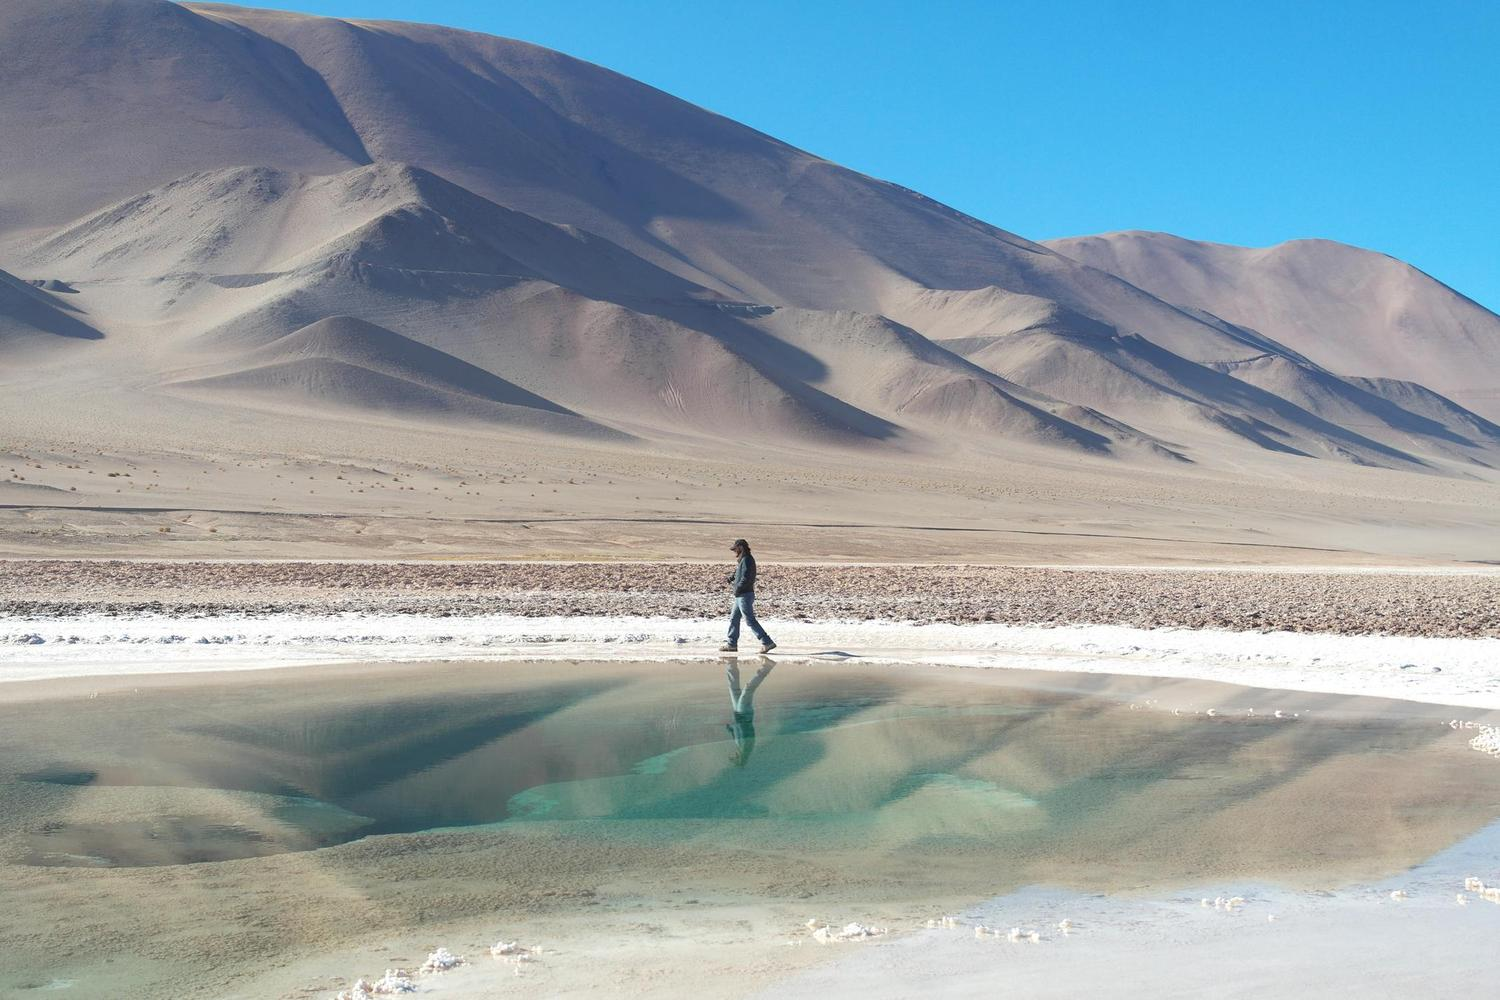 Walking around the water holes of Ojos del Mar in Argentina's Puna